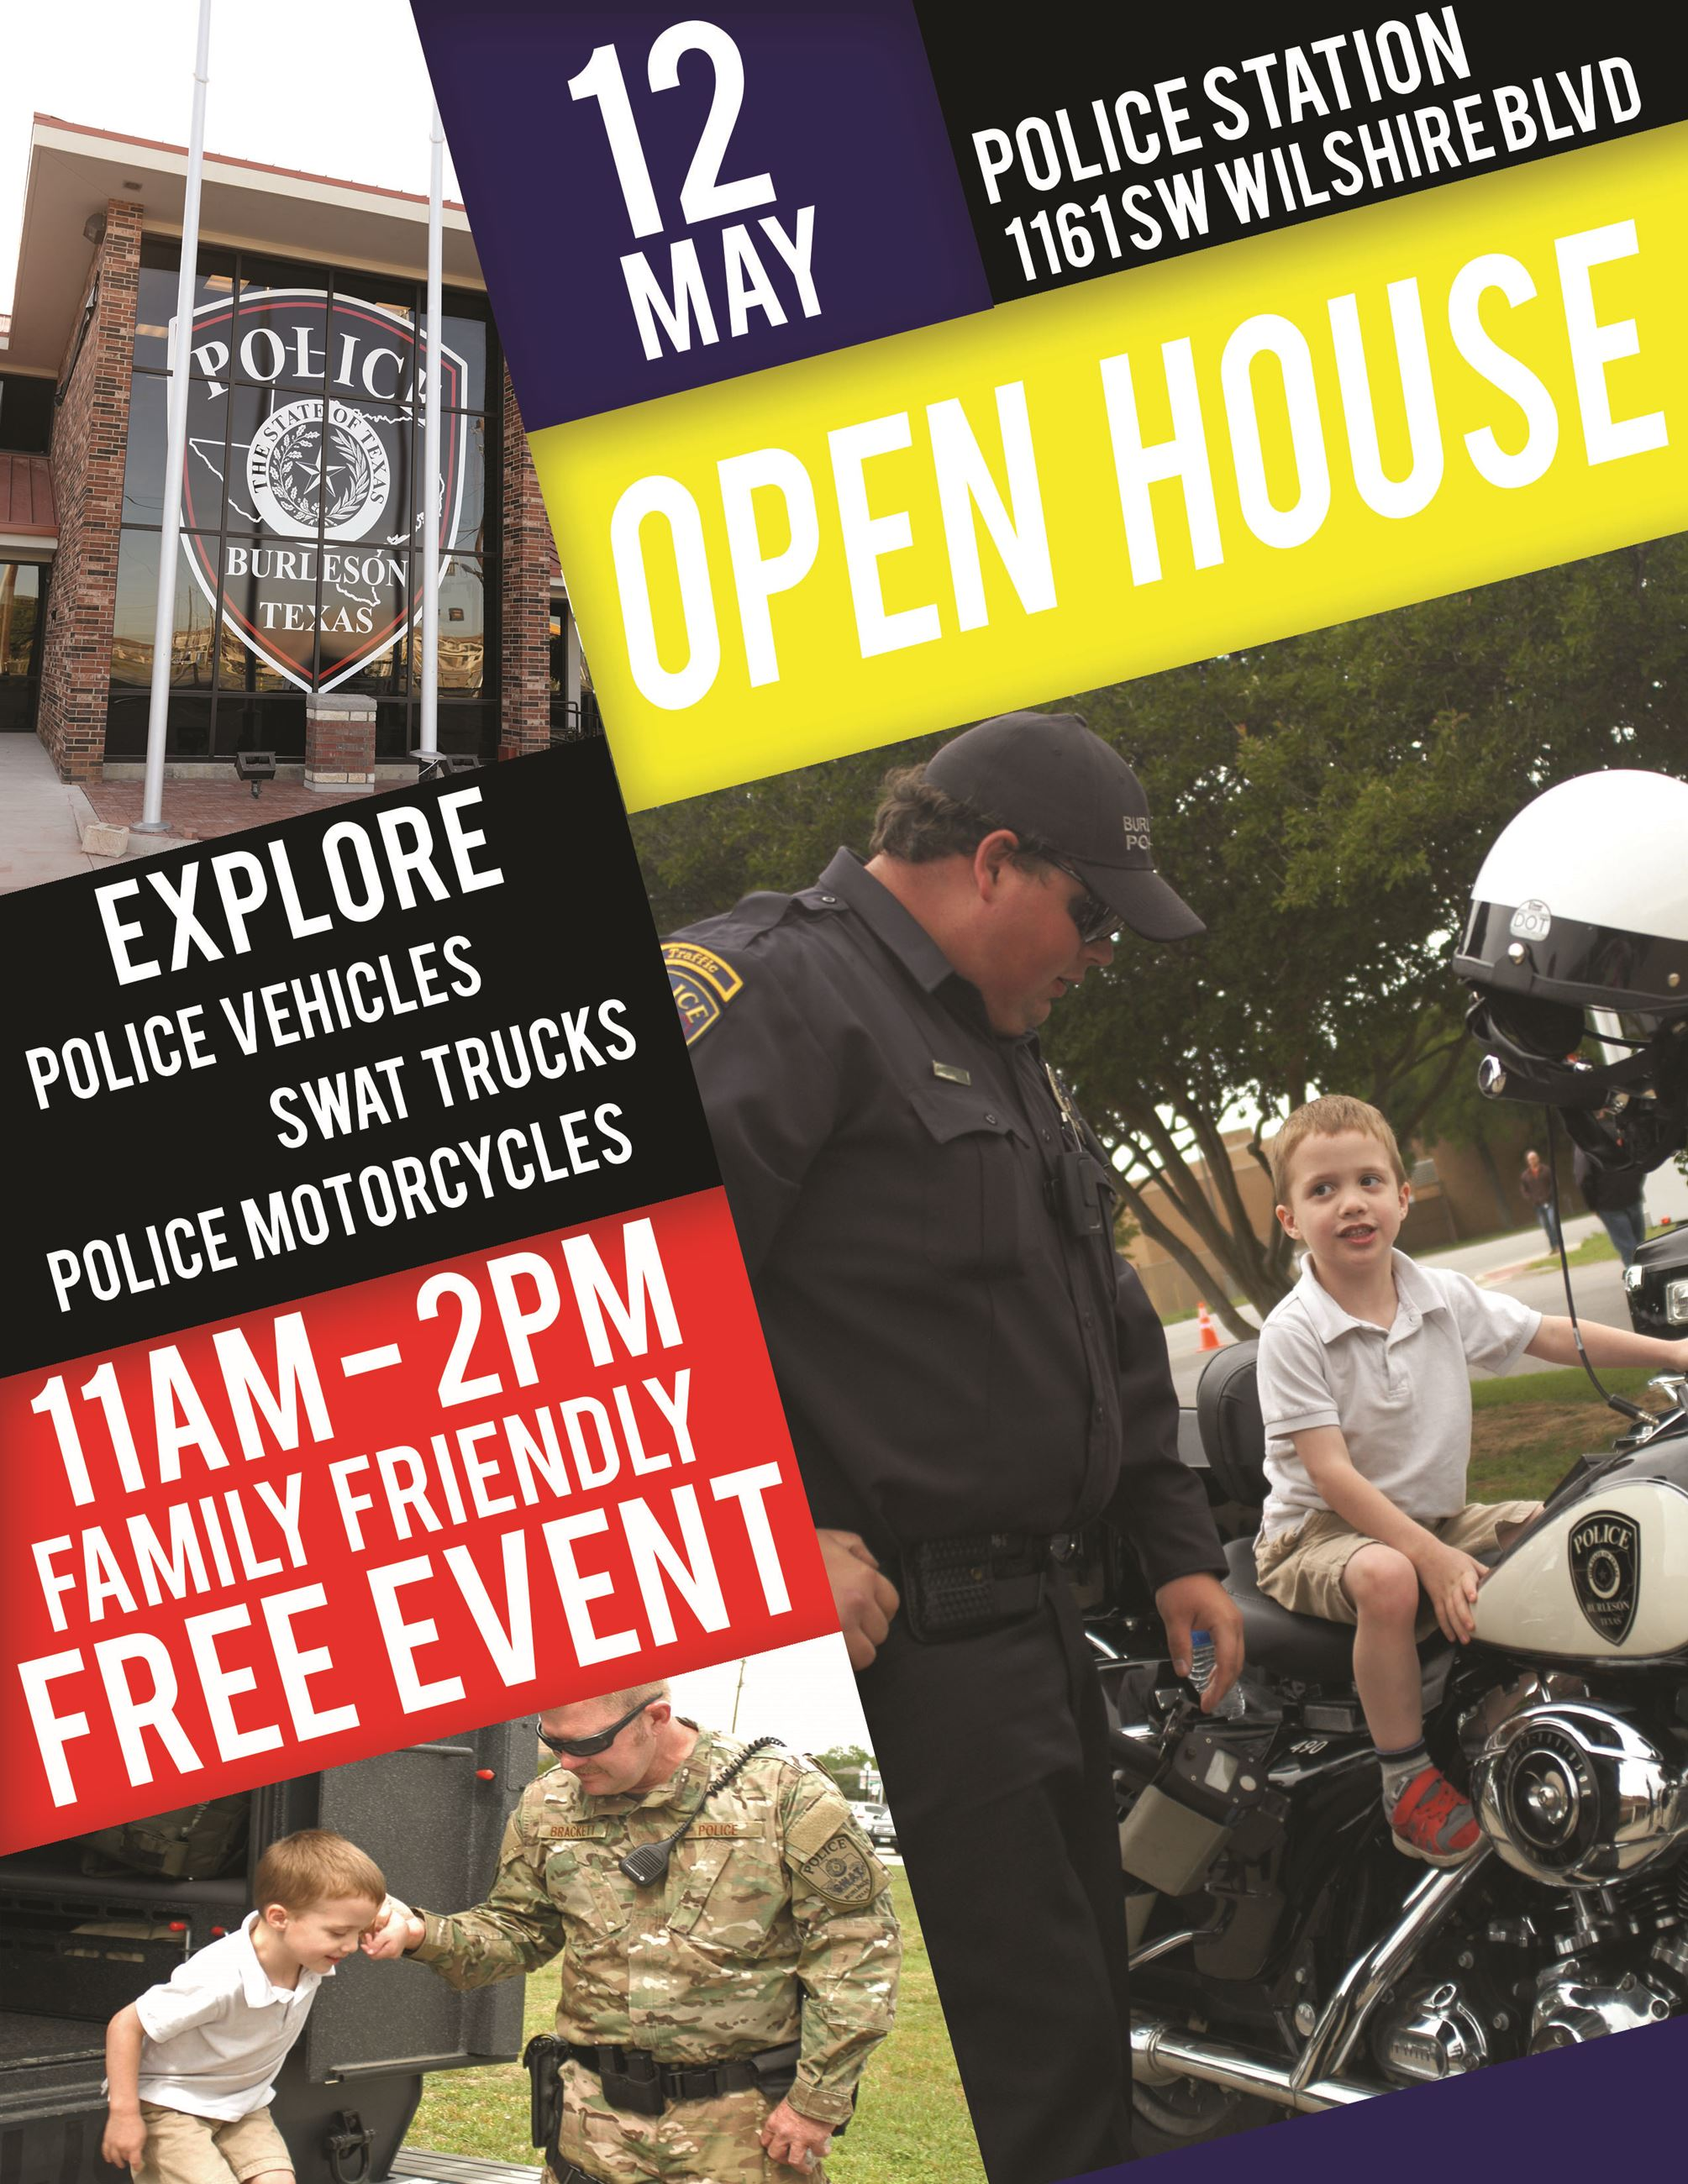 2018 Open House Flyer - Police